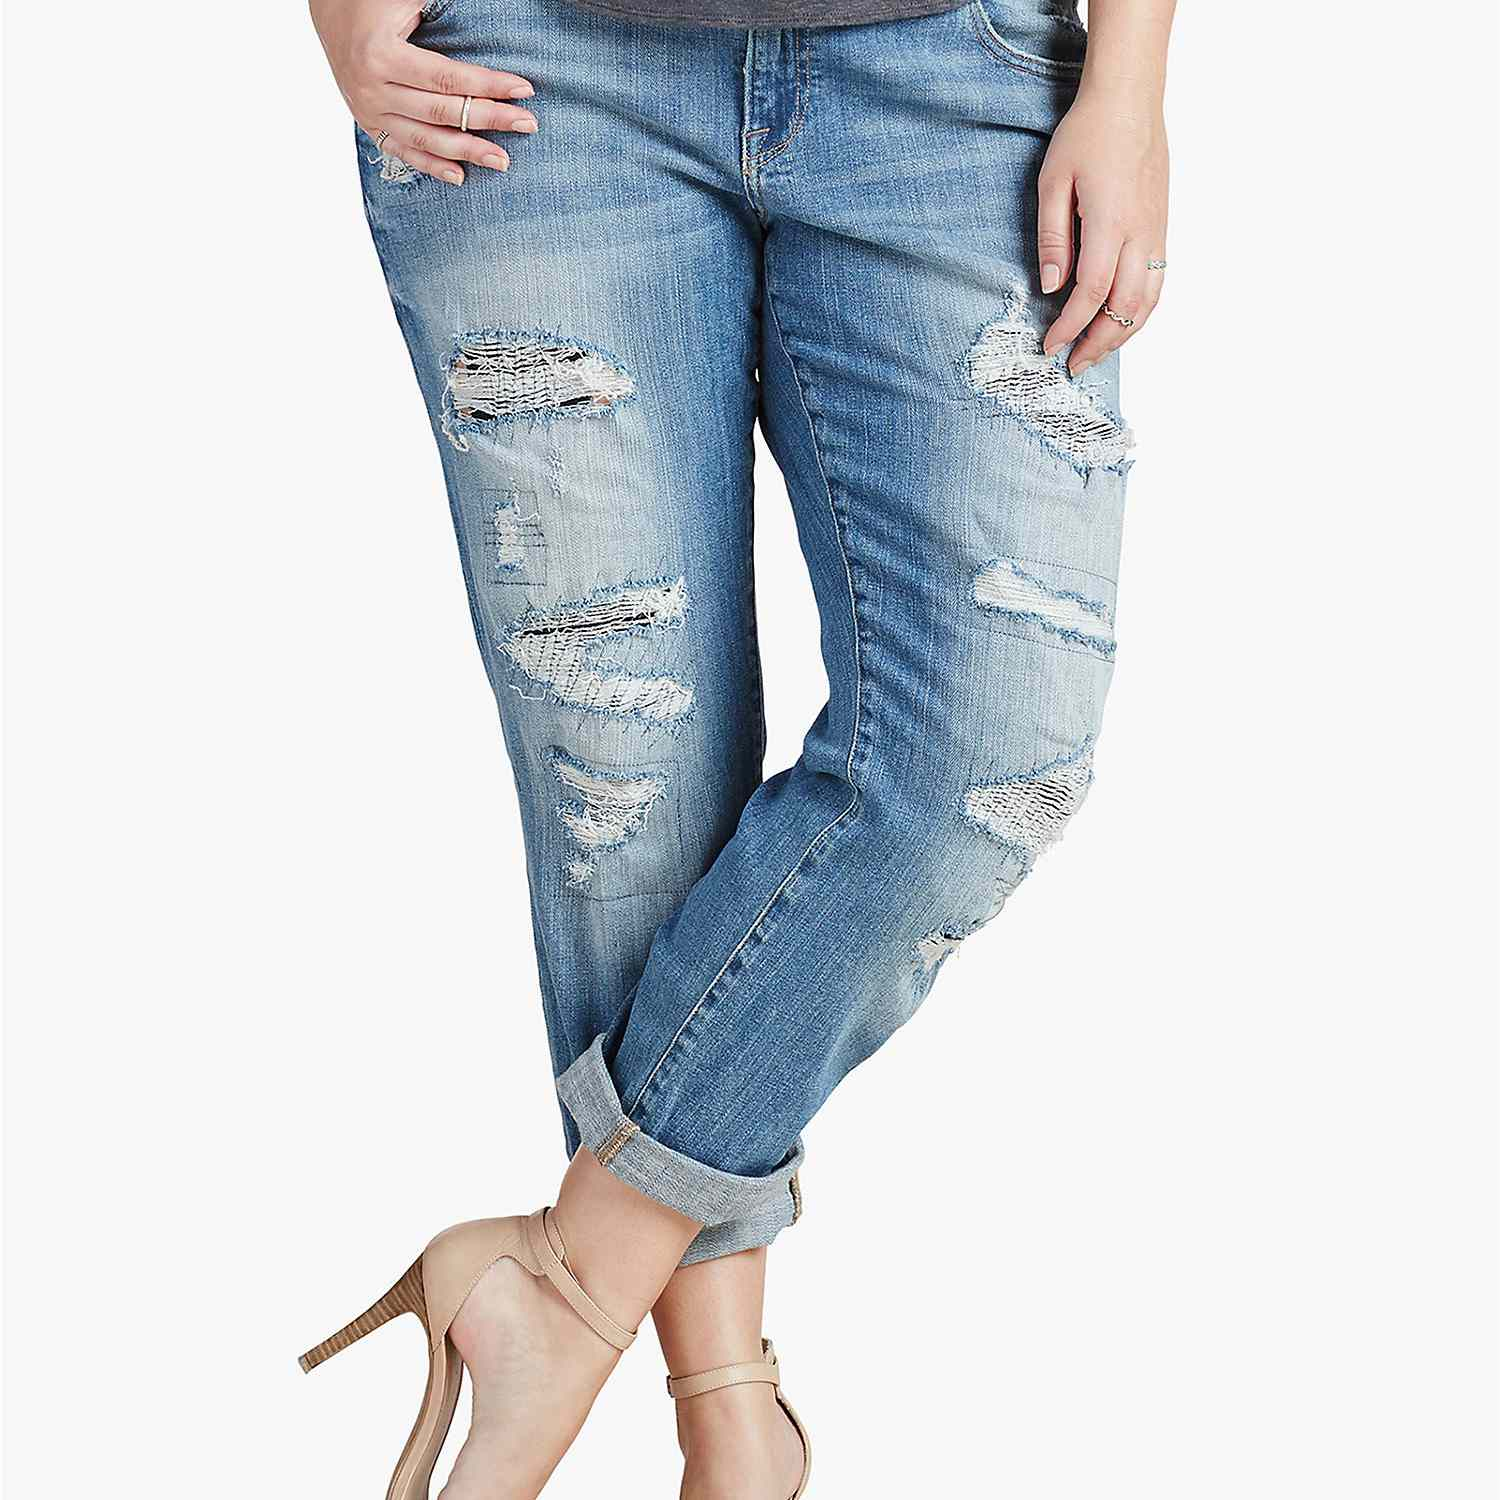 How should boyfriend jeans fit in the back